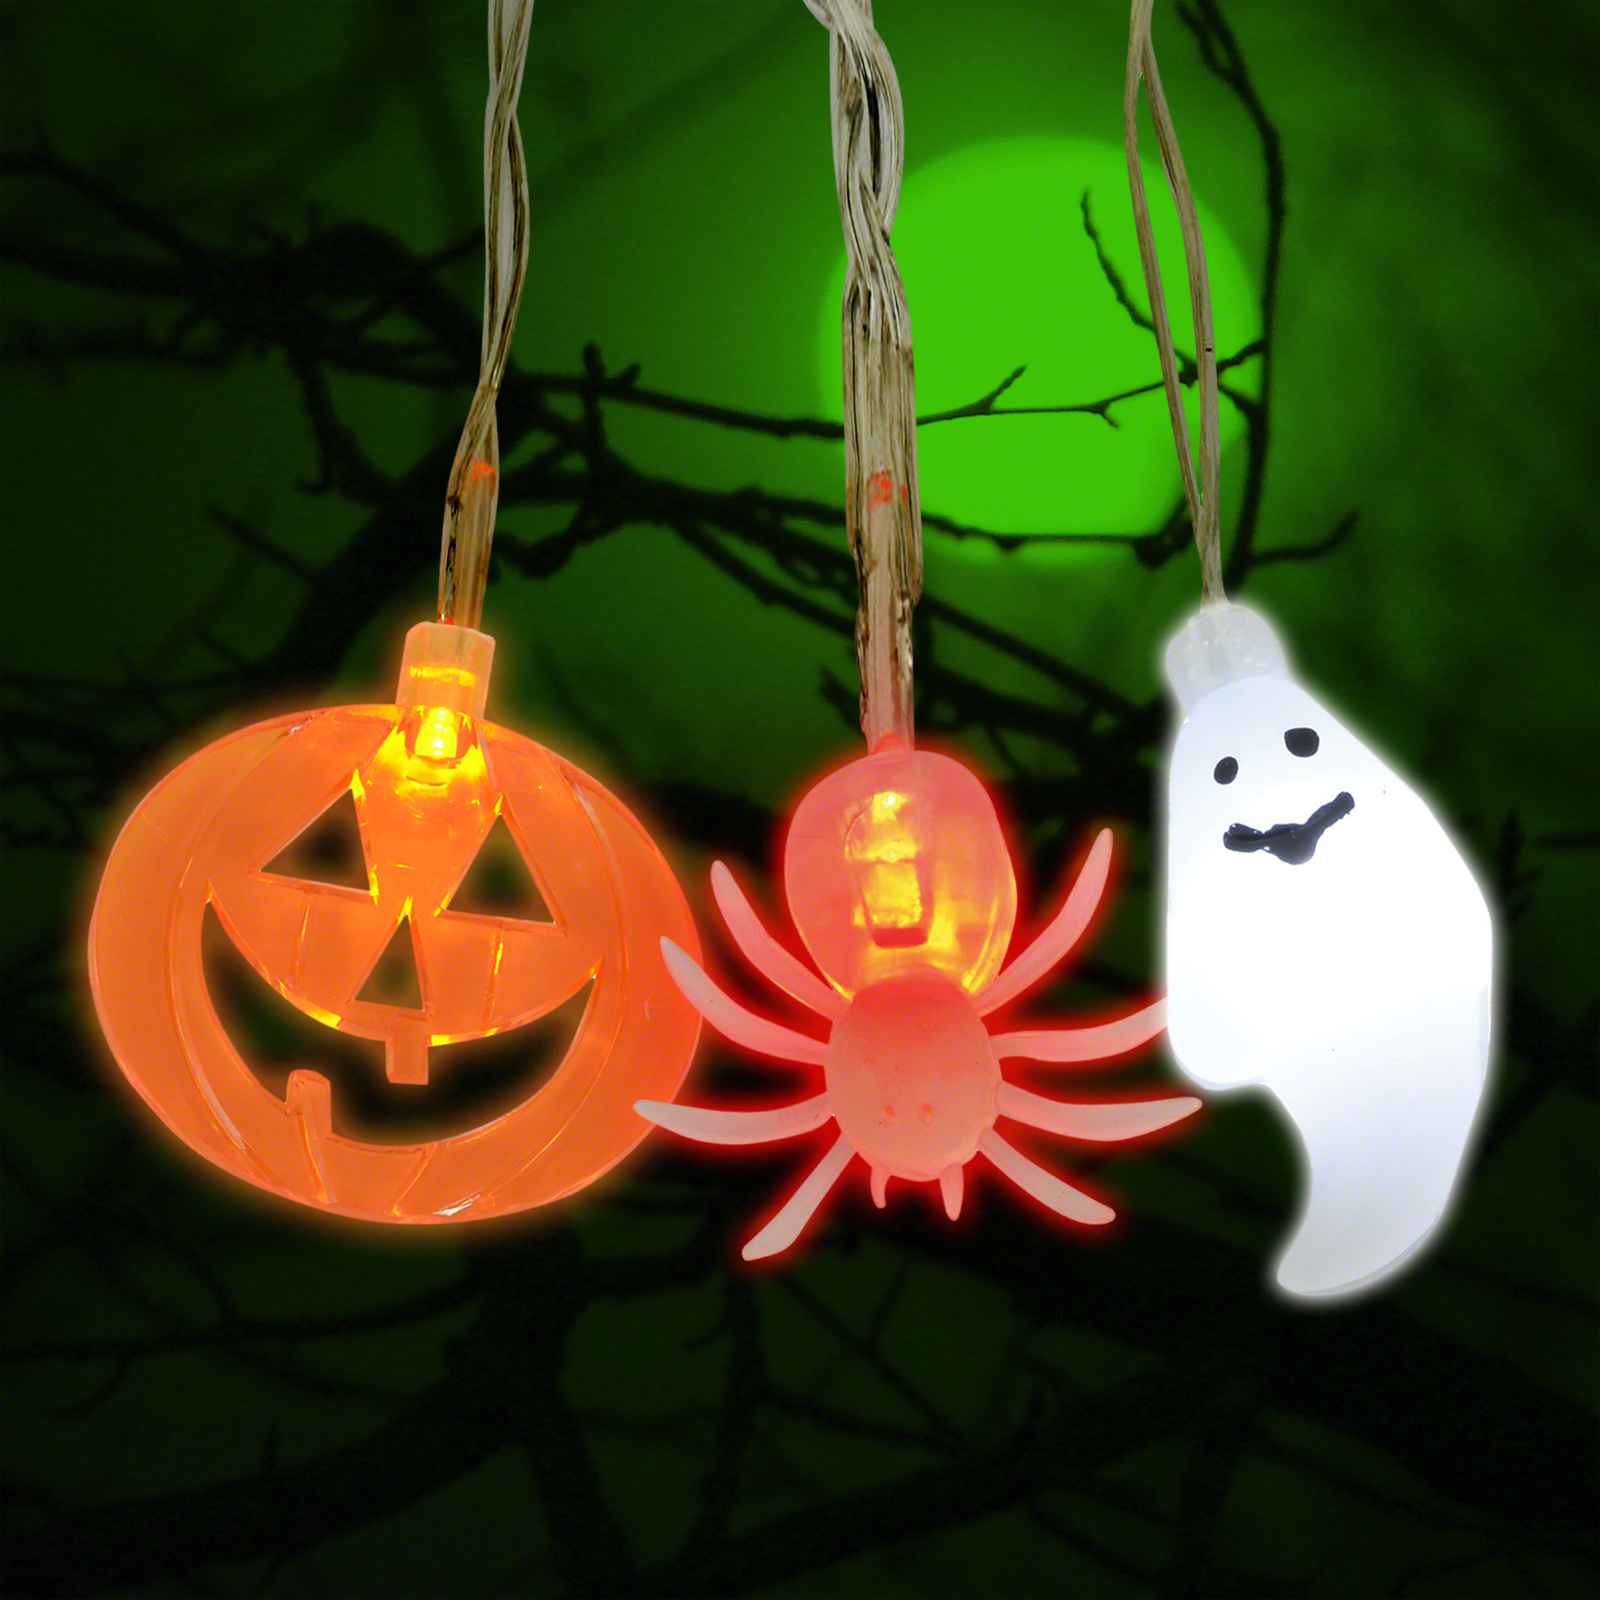 10 LED Halloween String Lights